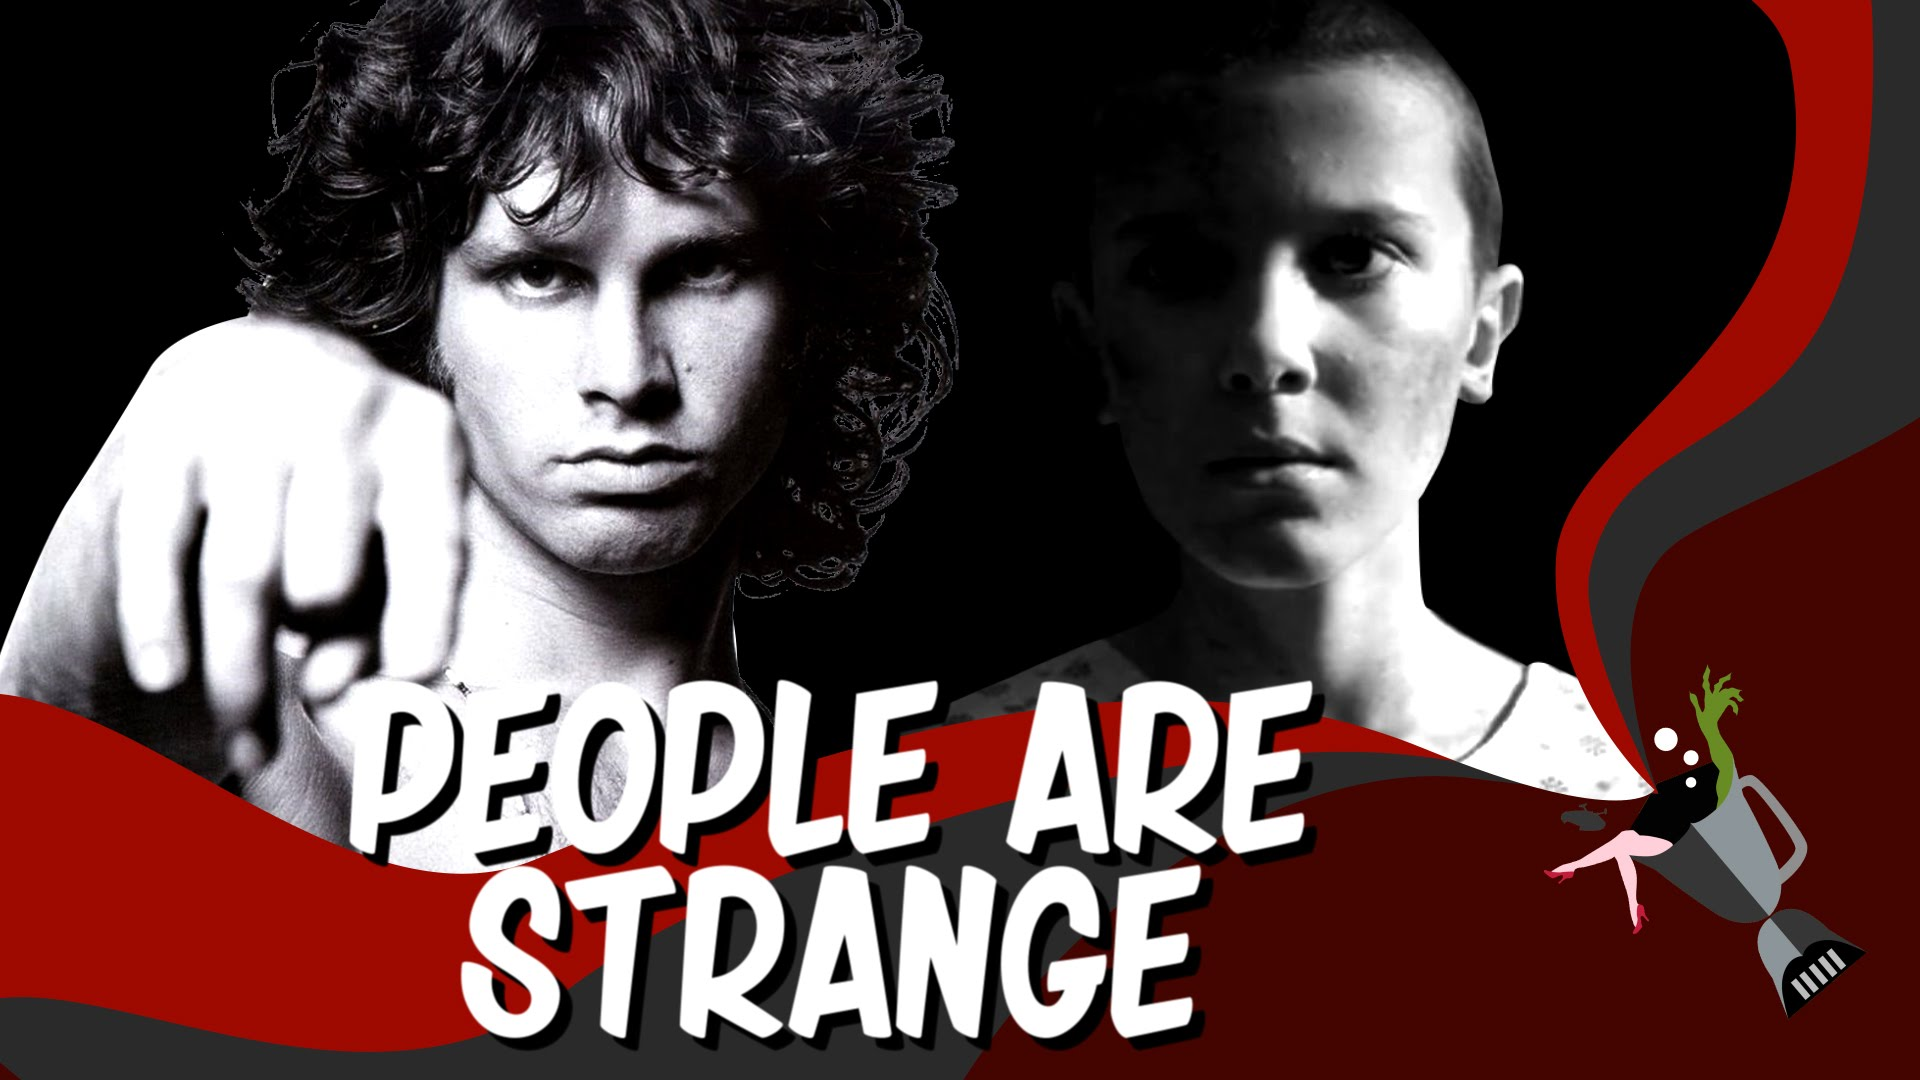 sc 1 st  Laughing Squid & A Mashup of Stranger Things and The Doors Song \u0027People Are Strange\u0027